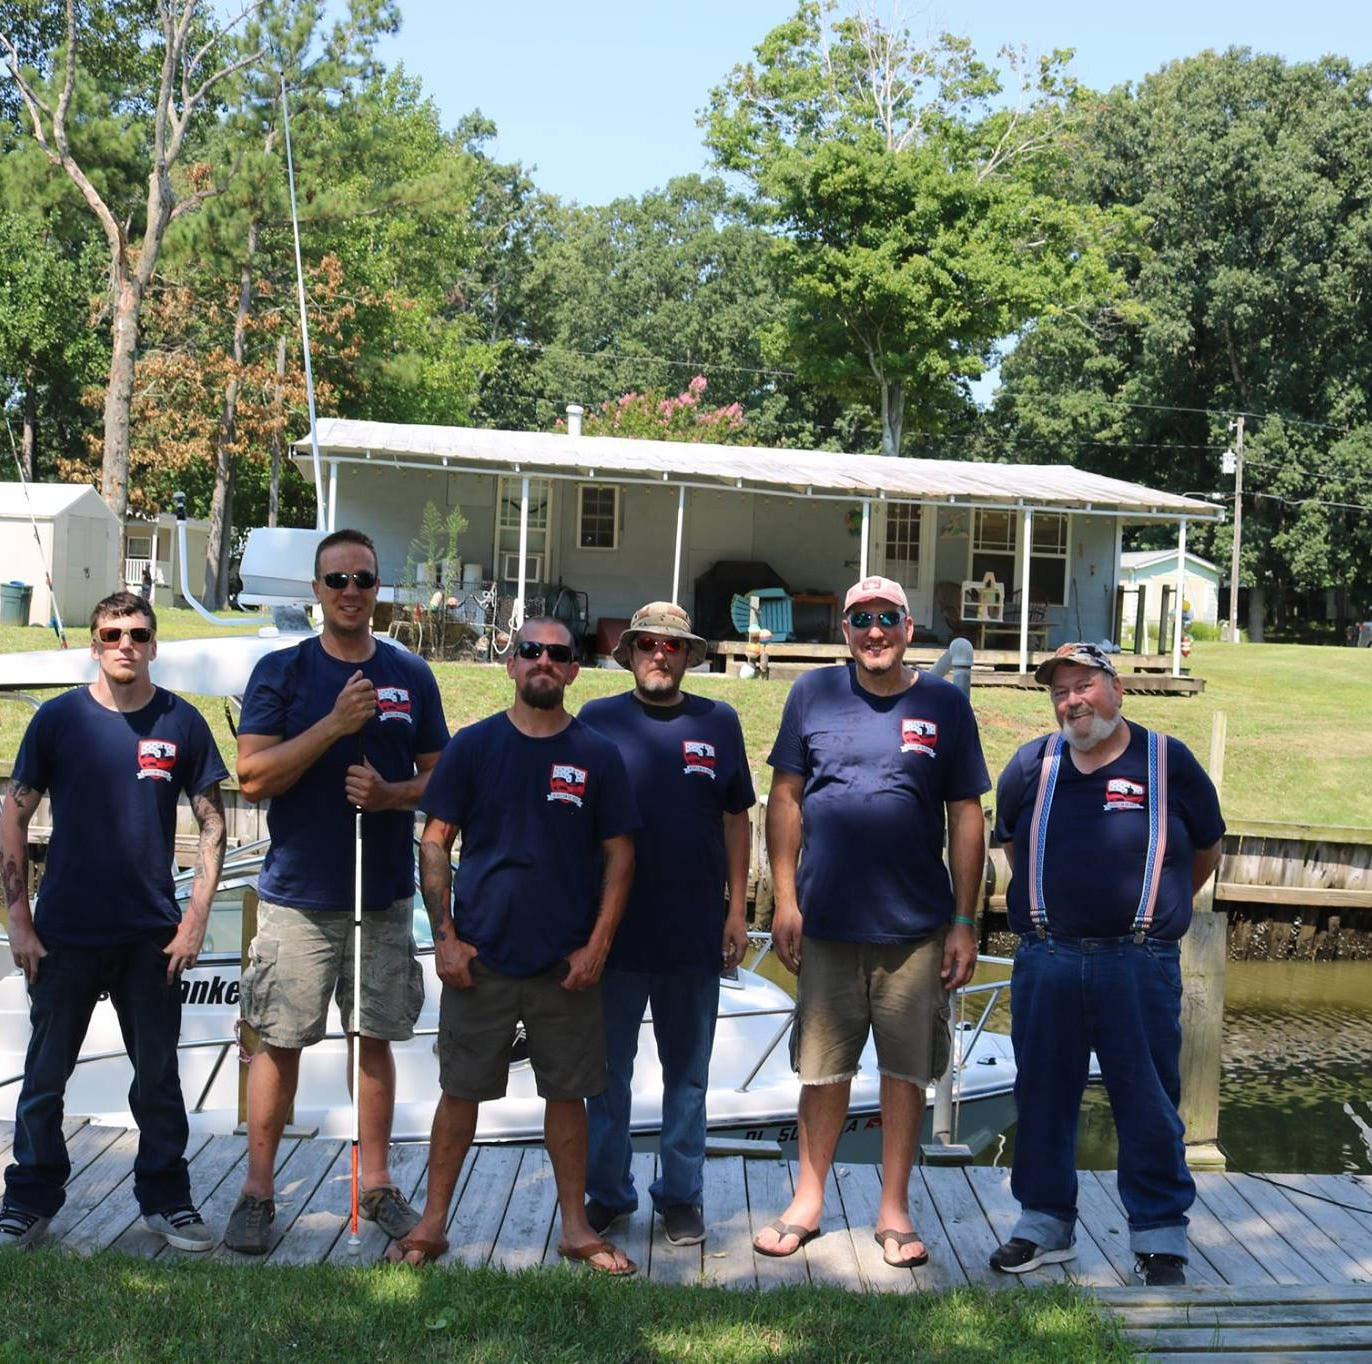 Heroes on the River helps veterans transition from military life